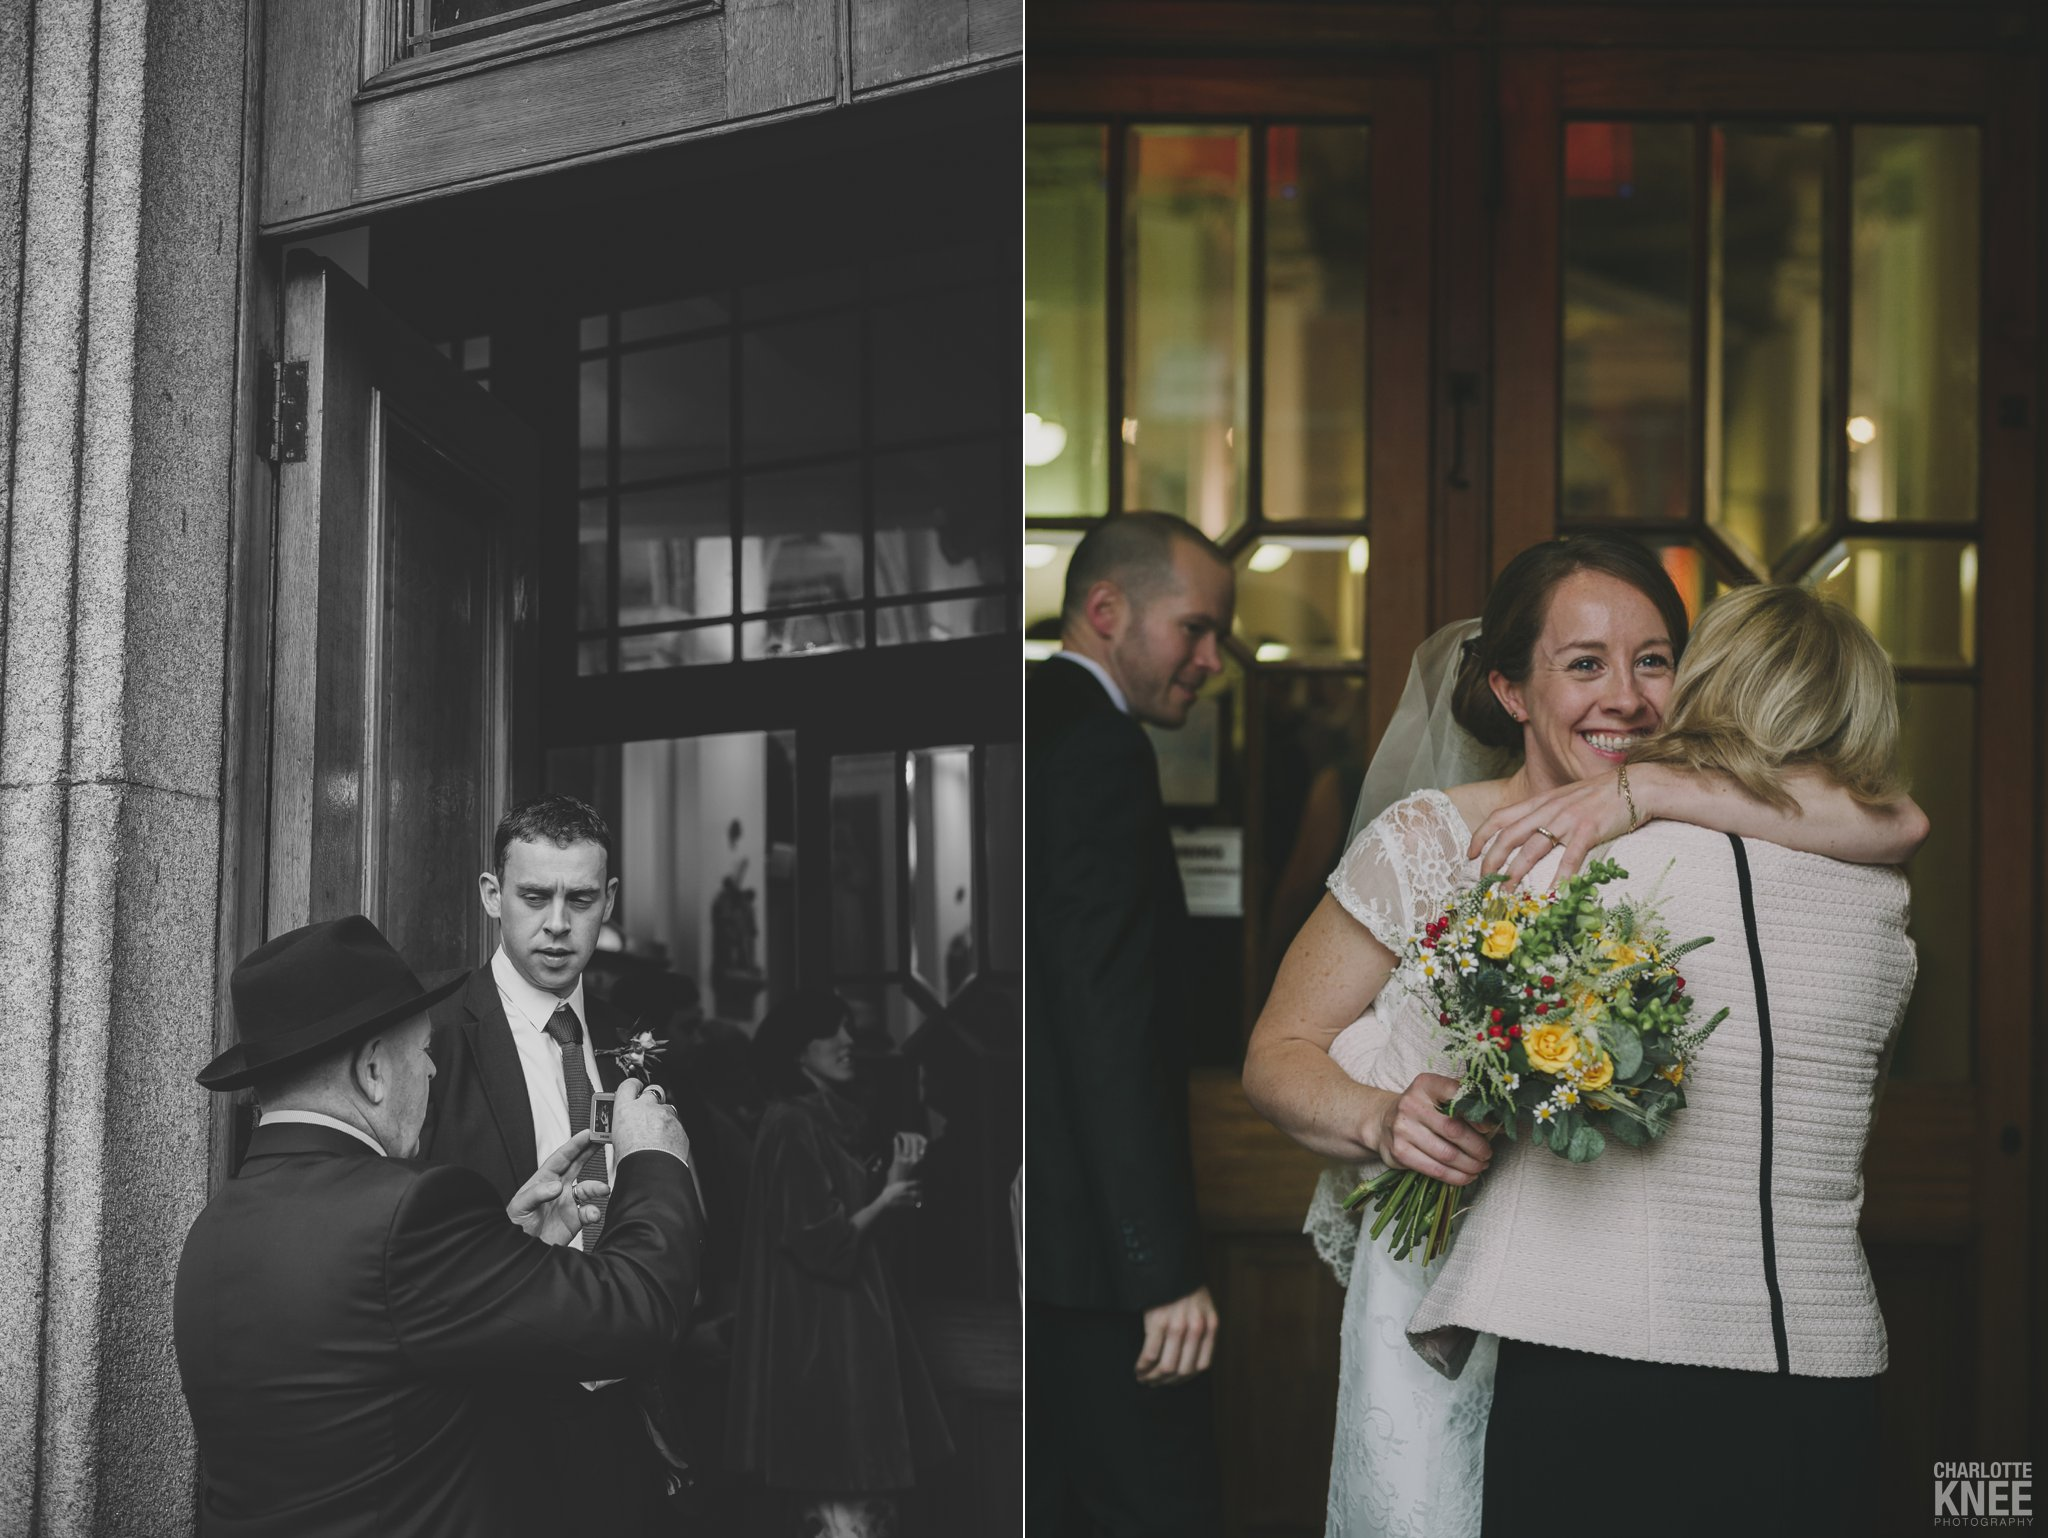 Destination-Wedding-The-Anglers-Rest-Dublin-Charlotte-Knee-Photography_0041.jpg